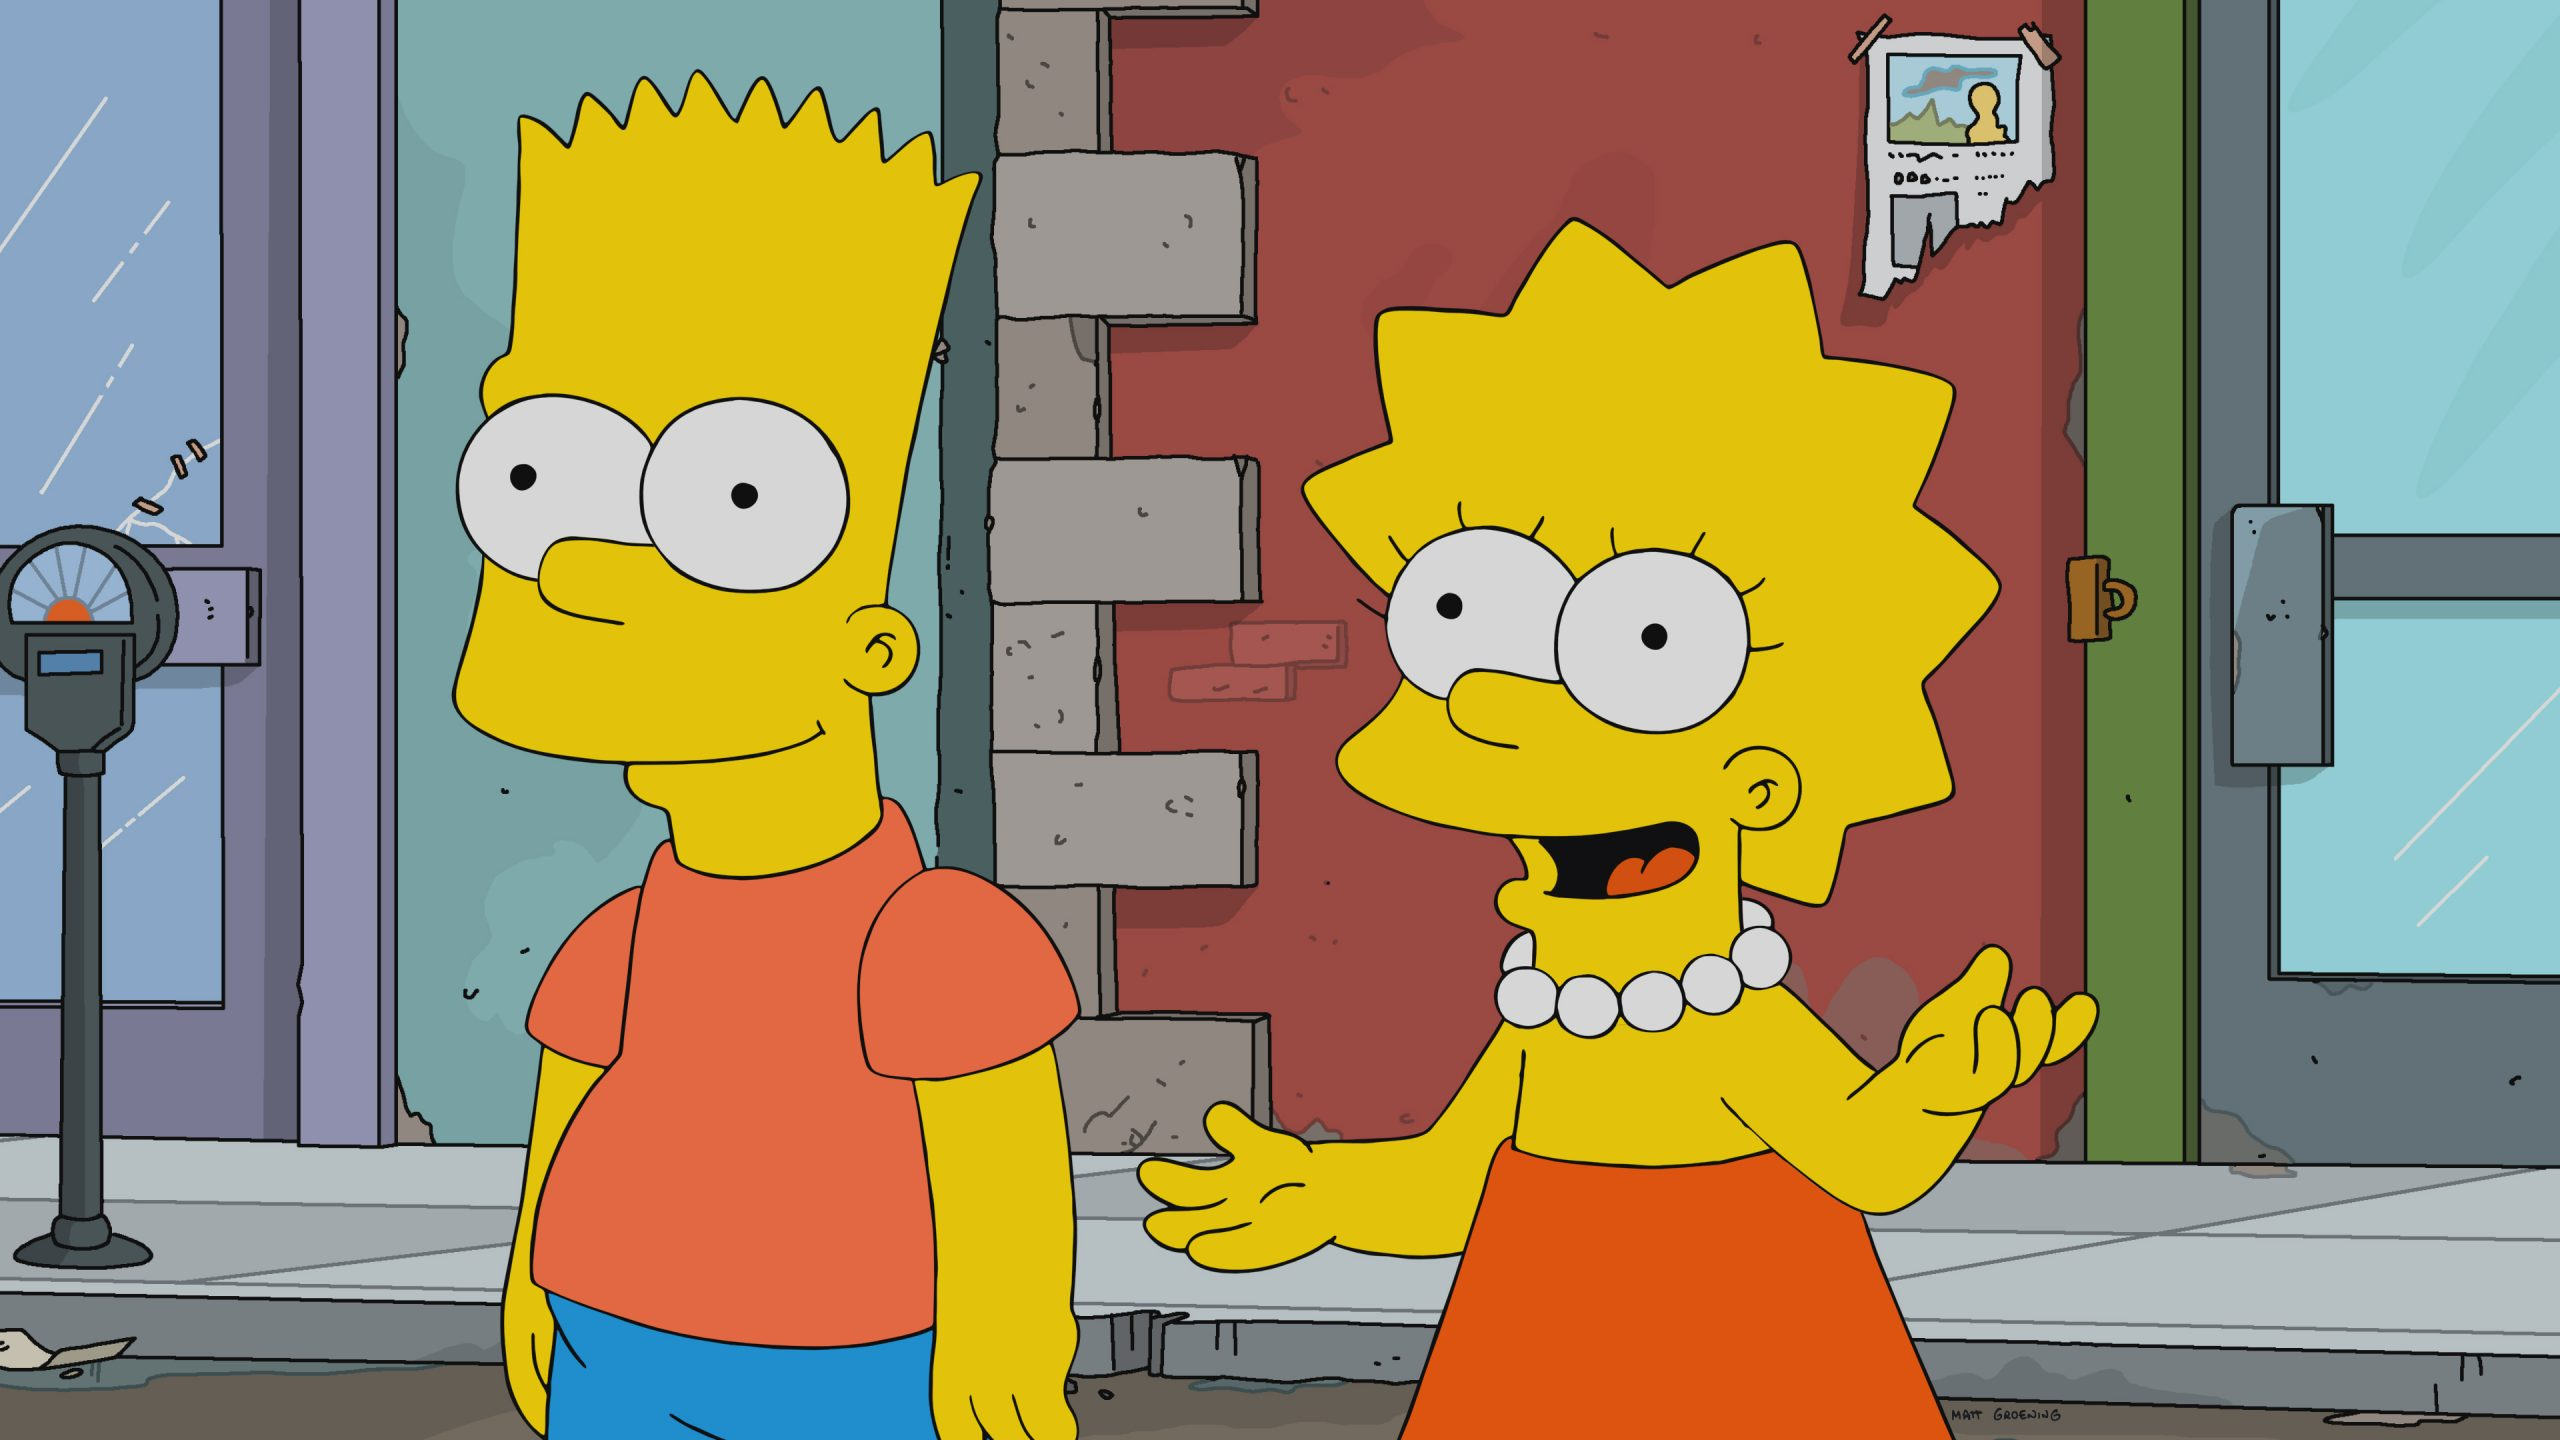 Simpsons Christmas Special 2021 The Simpsons Theme Song Originally Used A Wrong Title For The Show